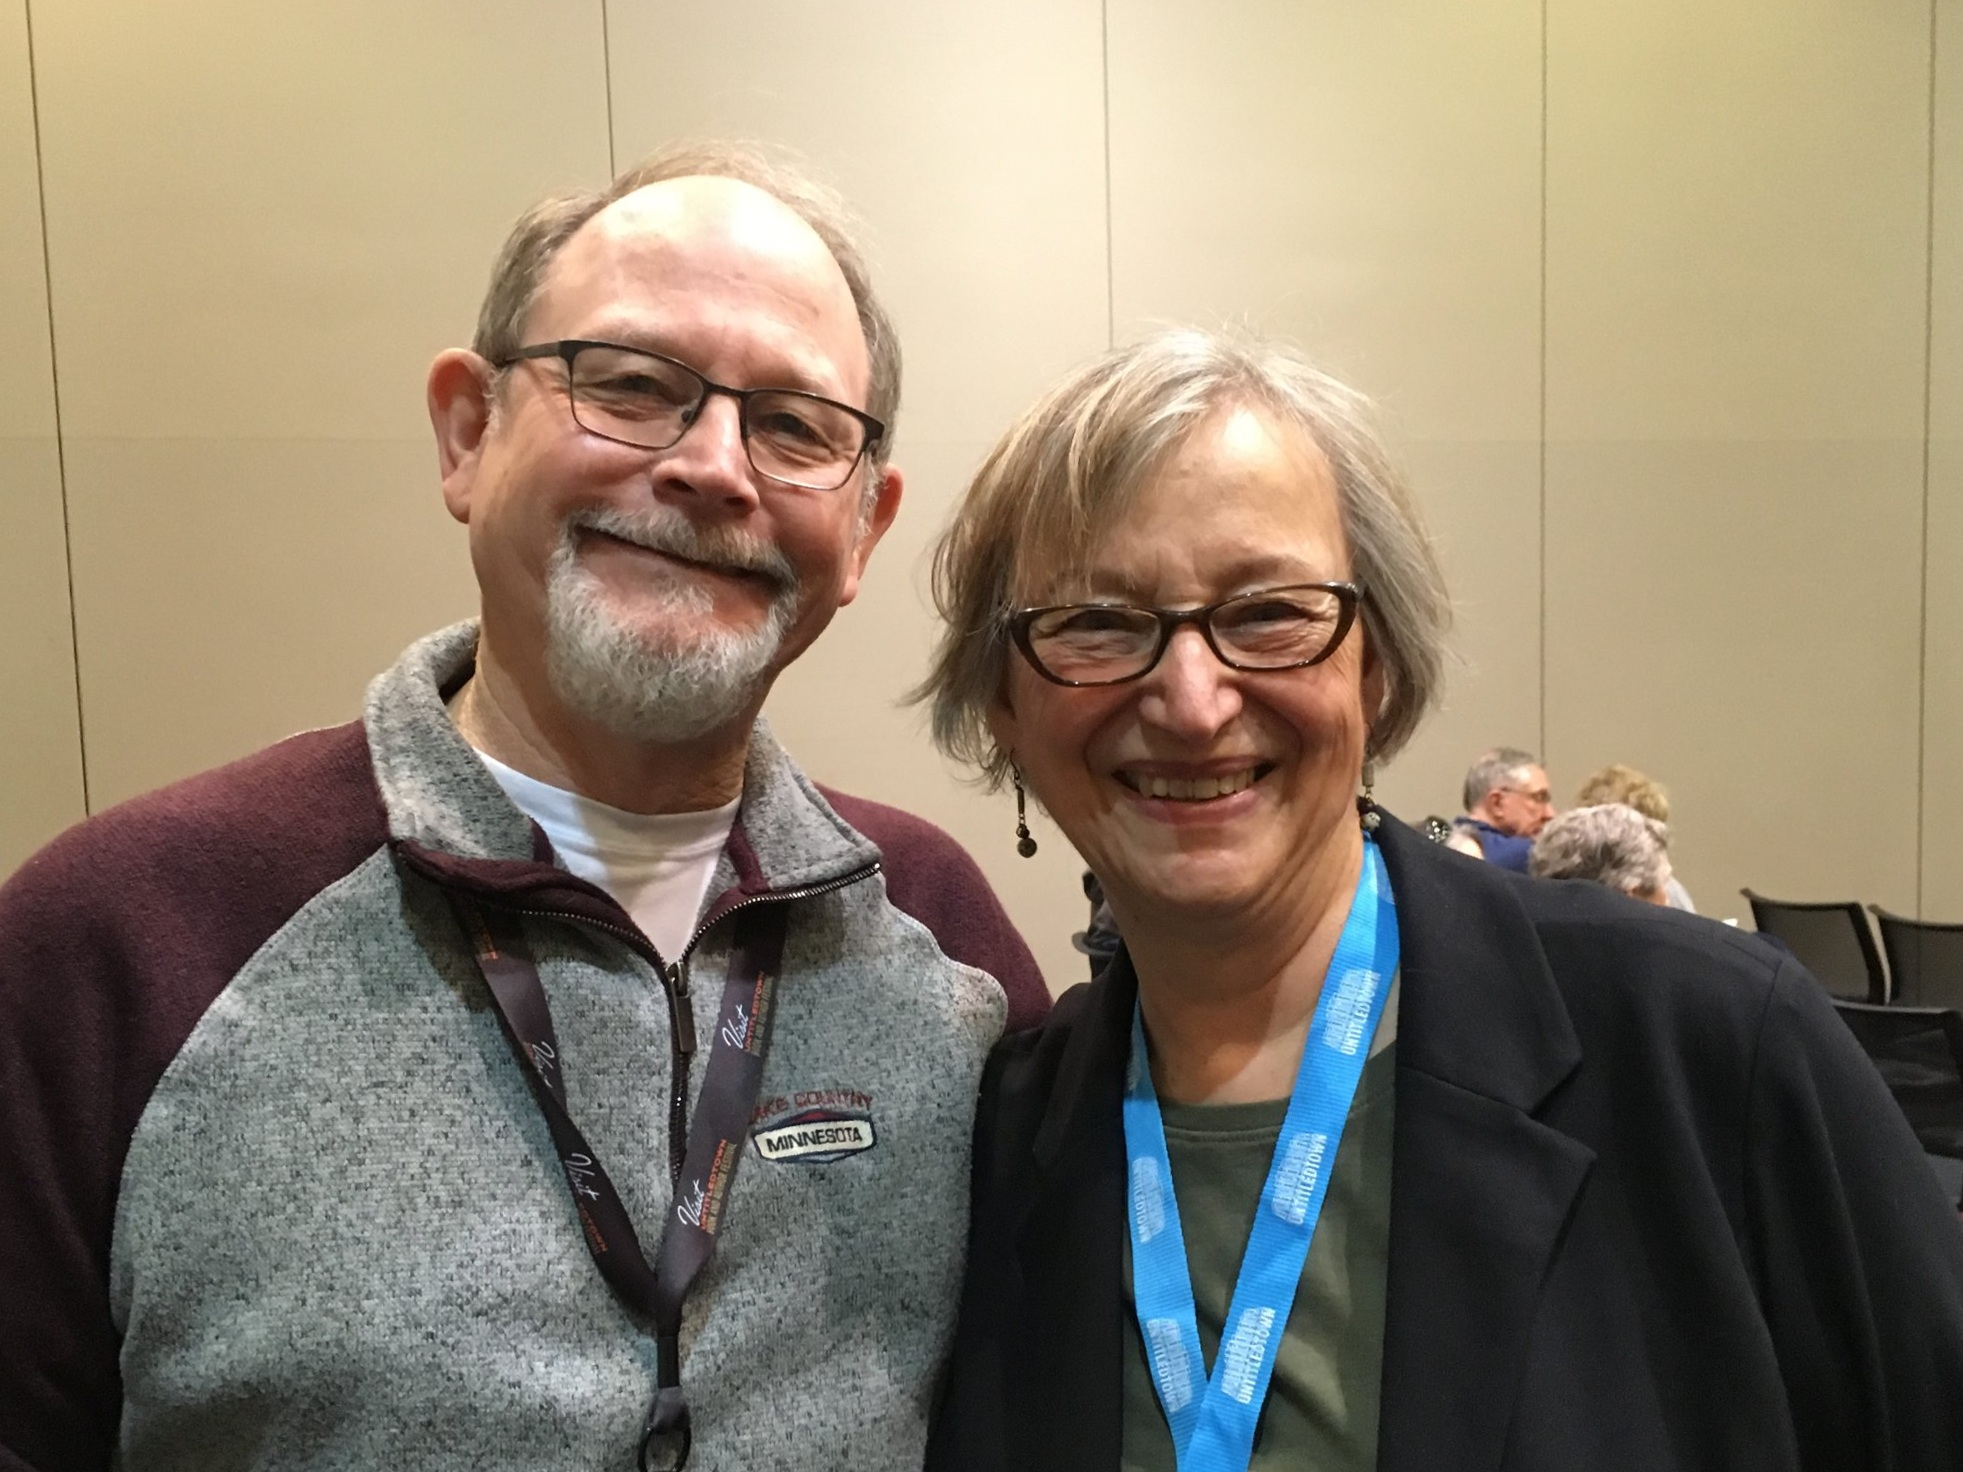 With best-selling author William Kent Krueger at 2019 Untitled Town Book and Author Festival, Green Bay, WI